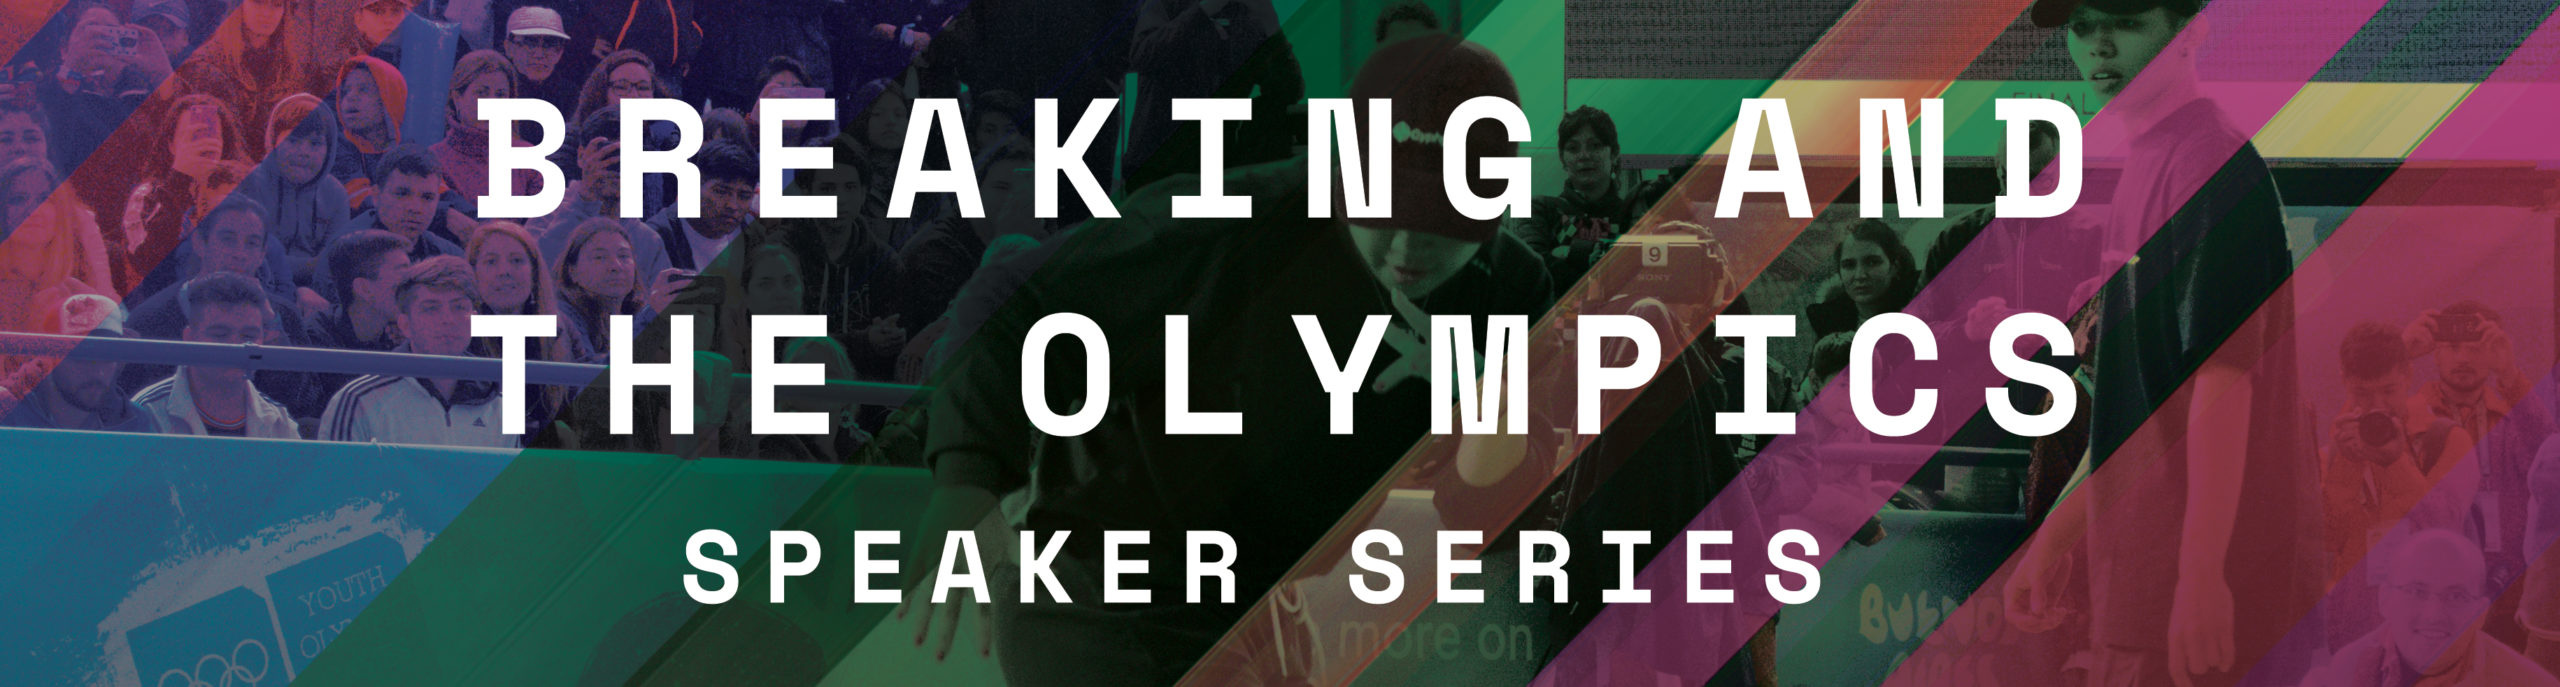 Breaking and the olympics banner